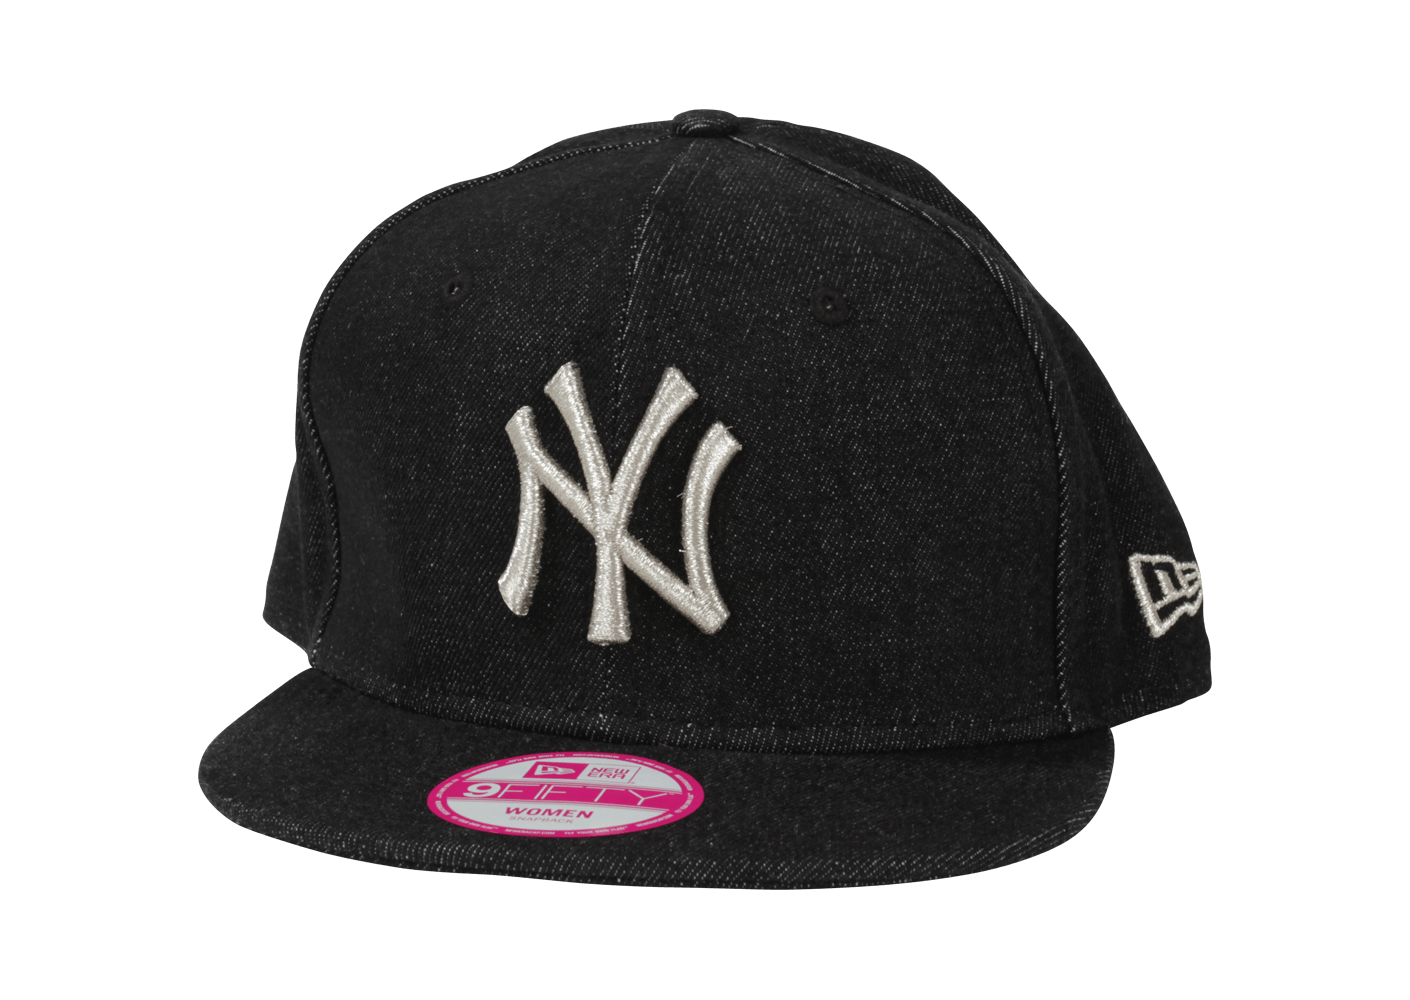 new era casquette snapback ny denim noir casquettes chausport. Black Bedroom Furniture Sets. Home Design Ideas